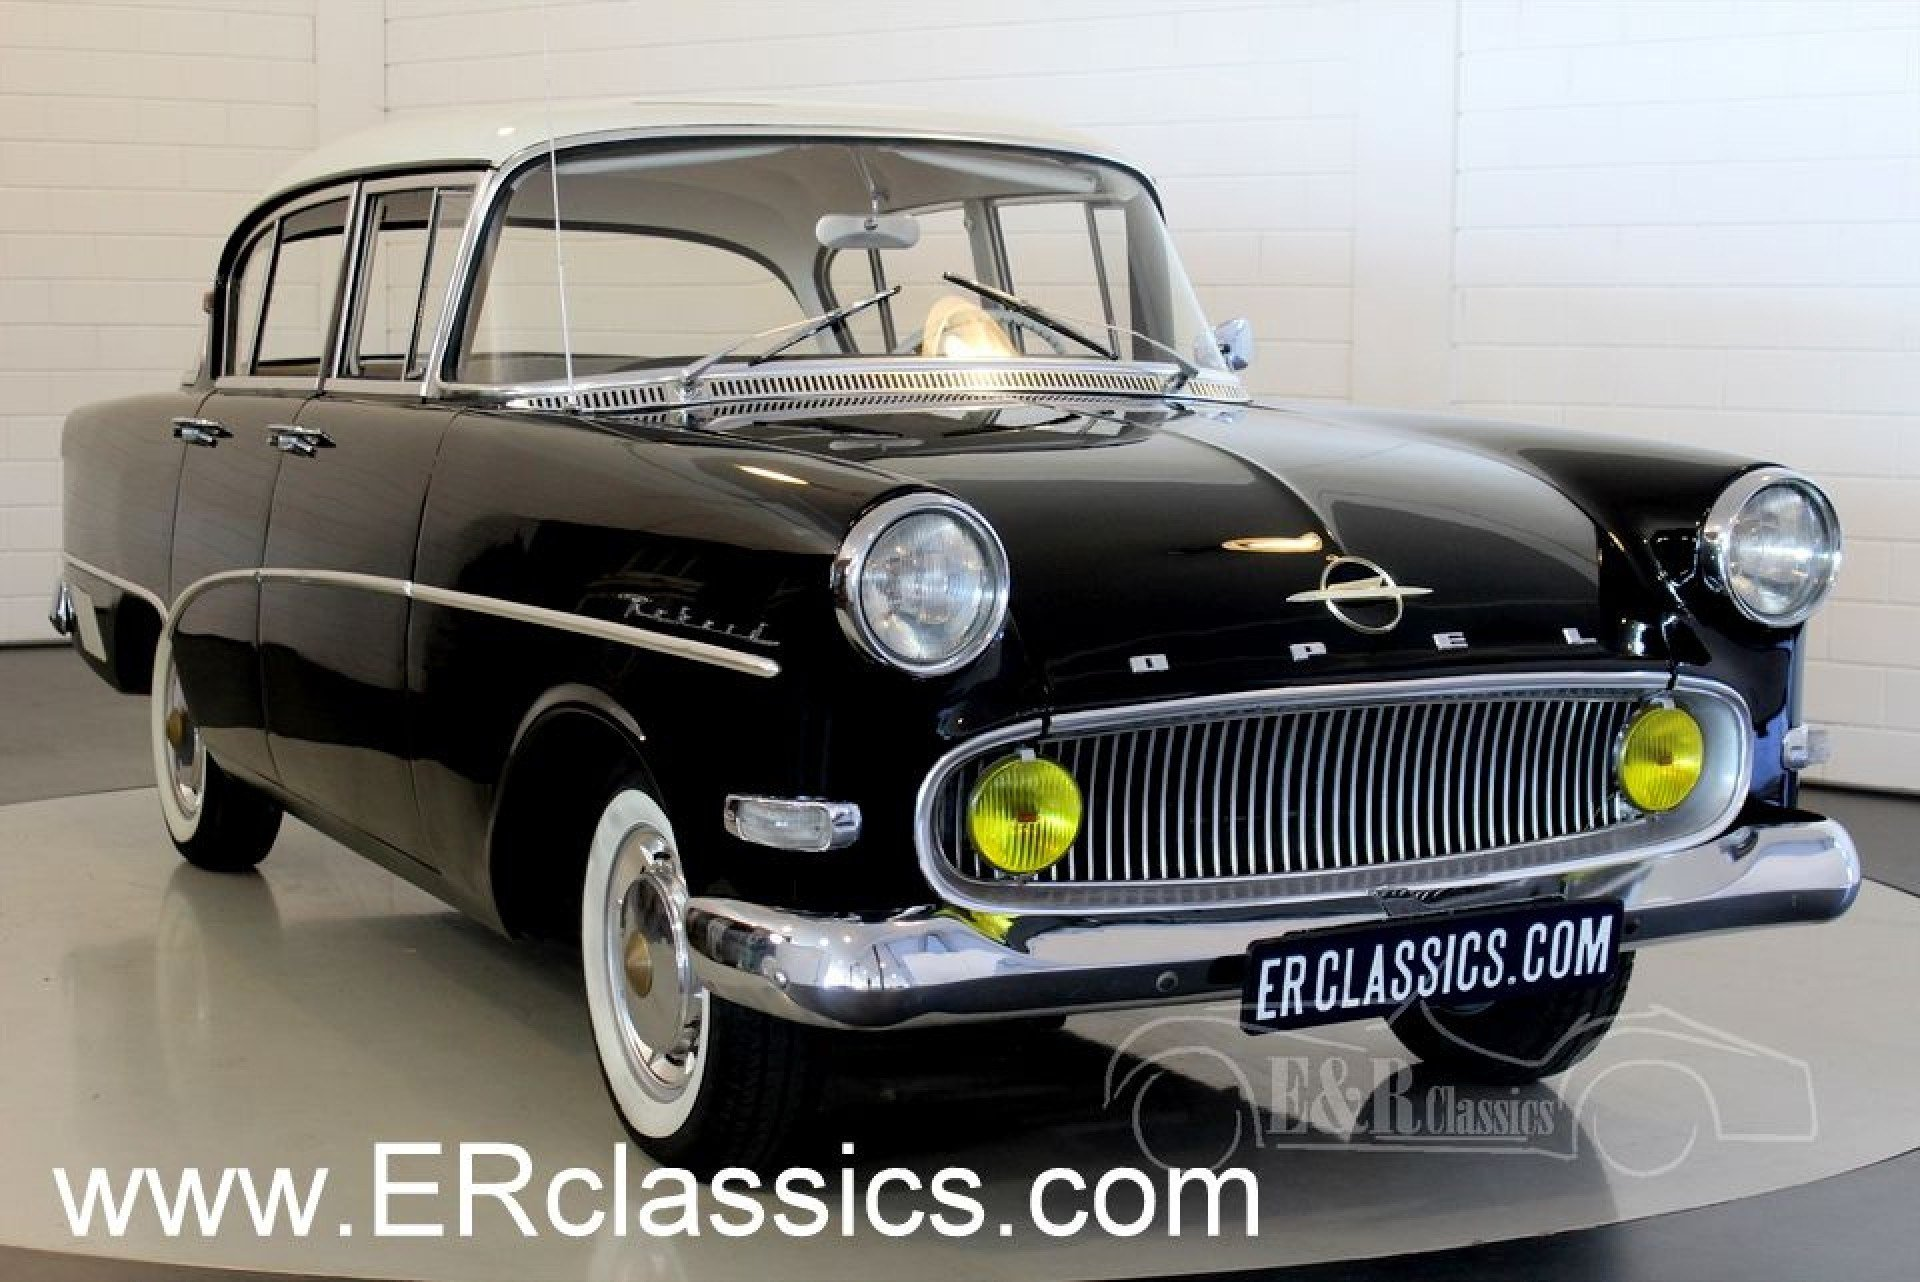 New Opel Olympia Rekord P1 1959 For Sale At Erclassics On This Month